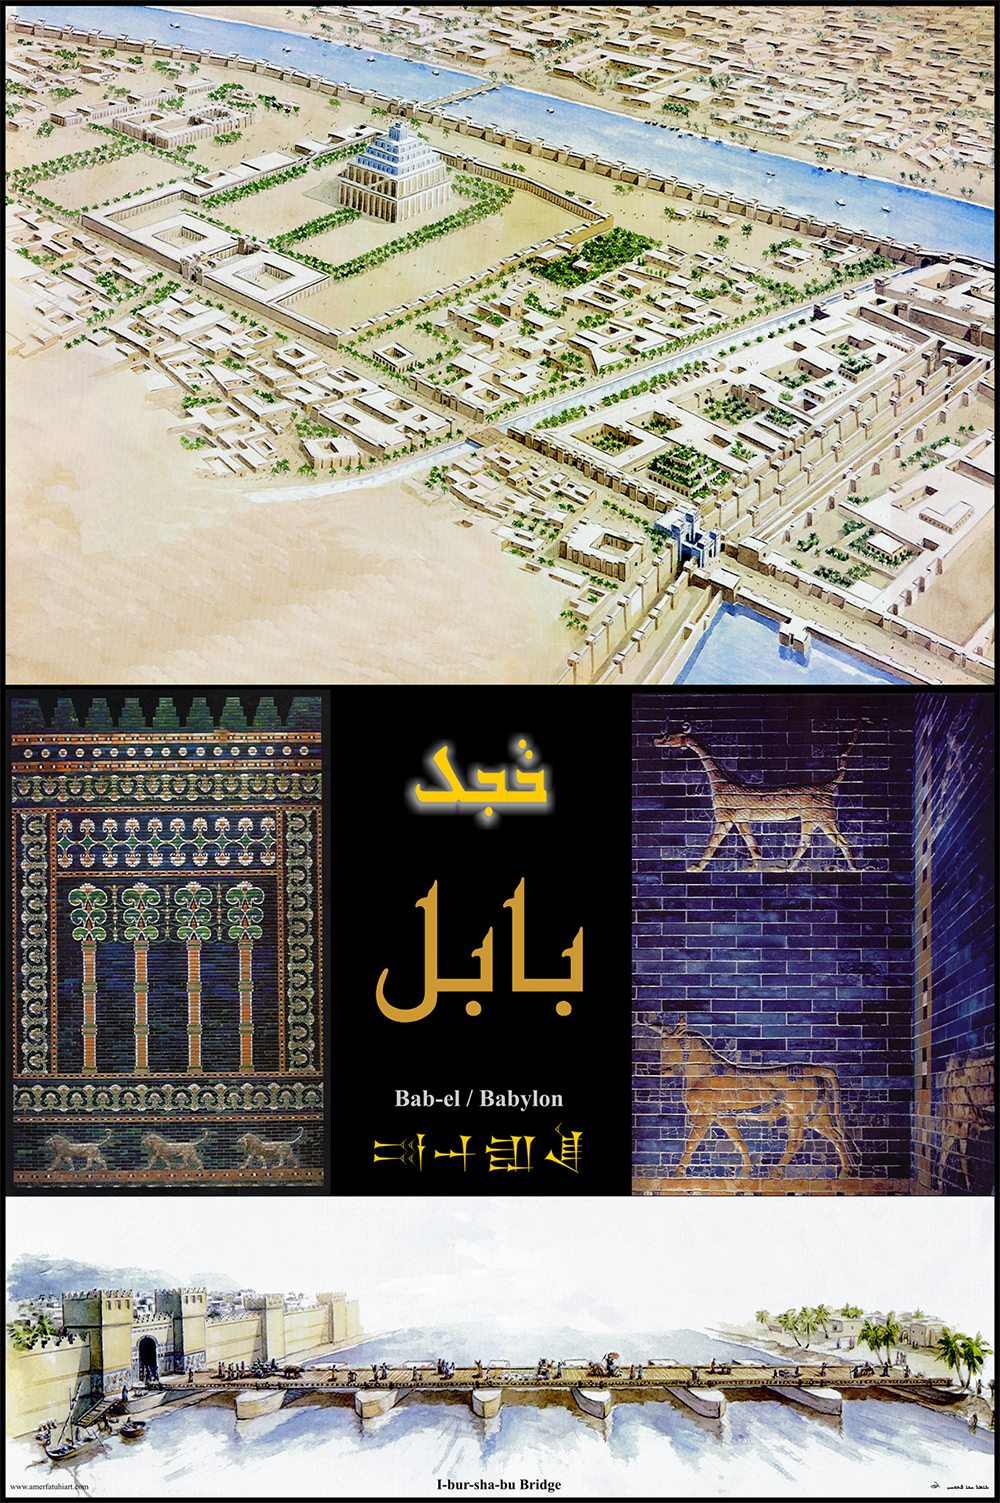 babylonian-e-temen-anki-tower-of-babylon